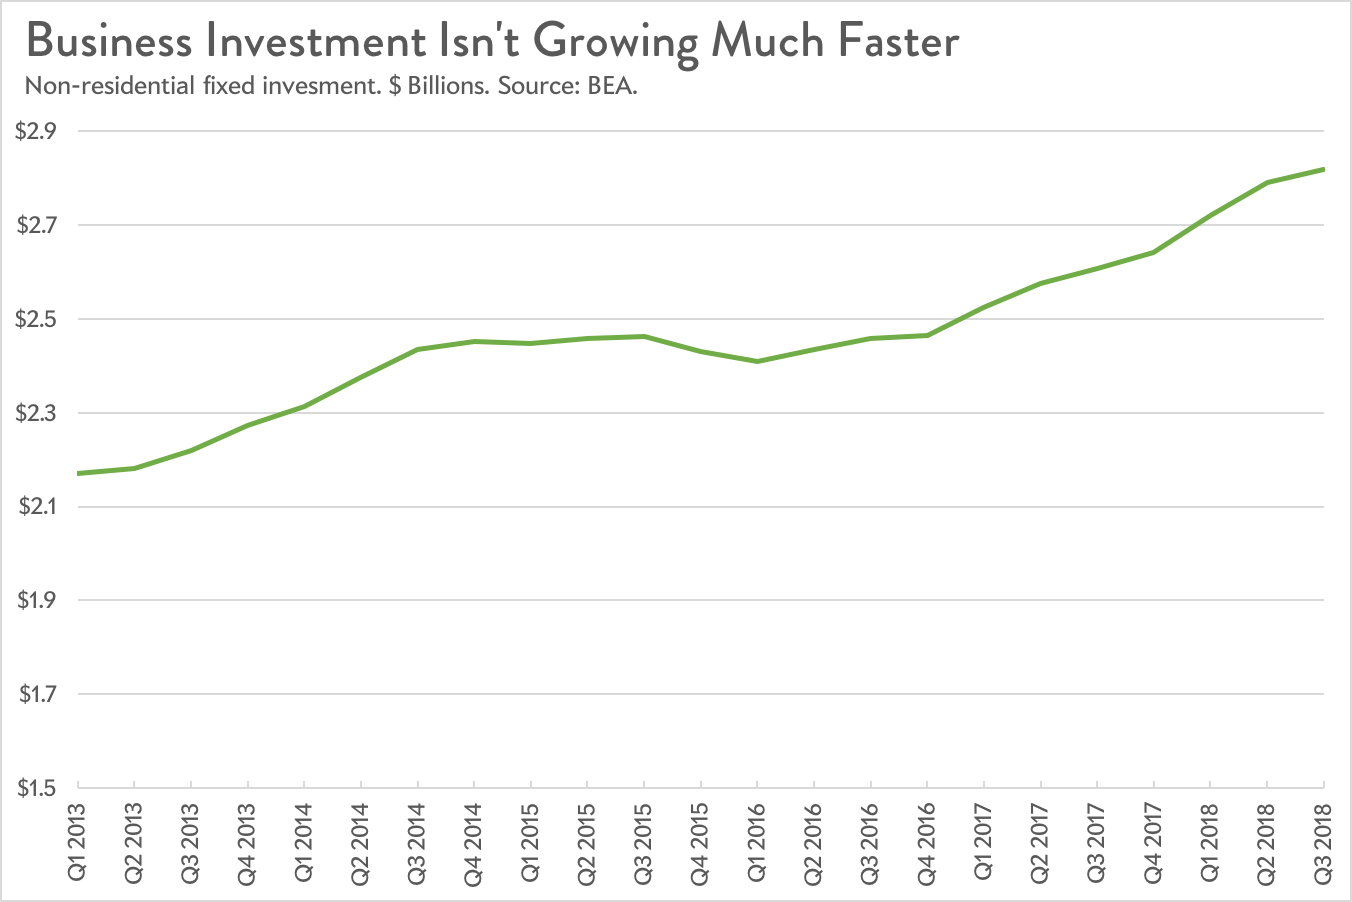 A chart showing business investment growing at a steady rate.